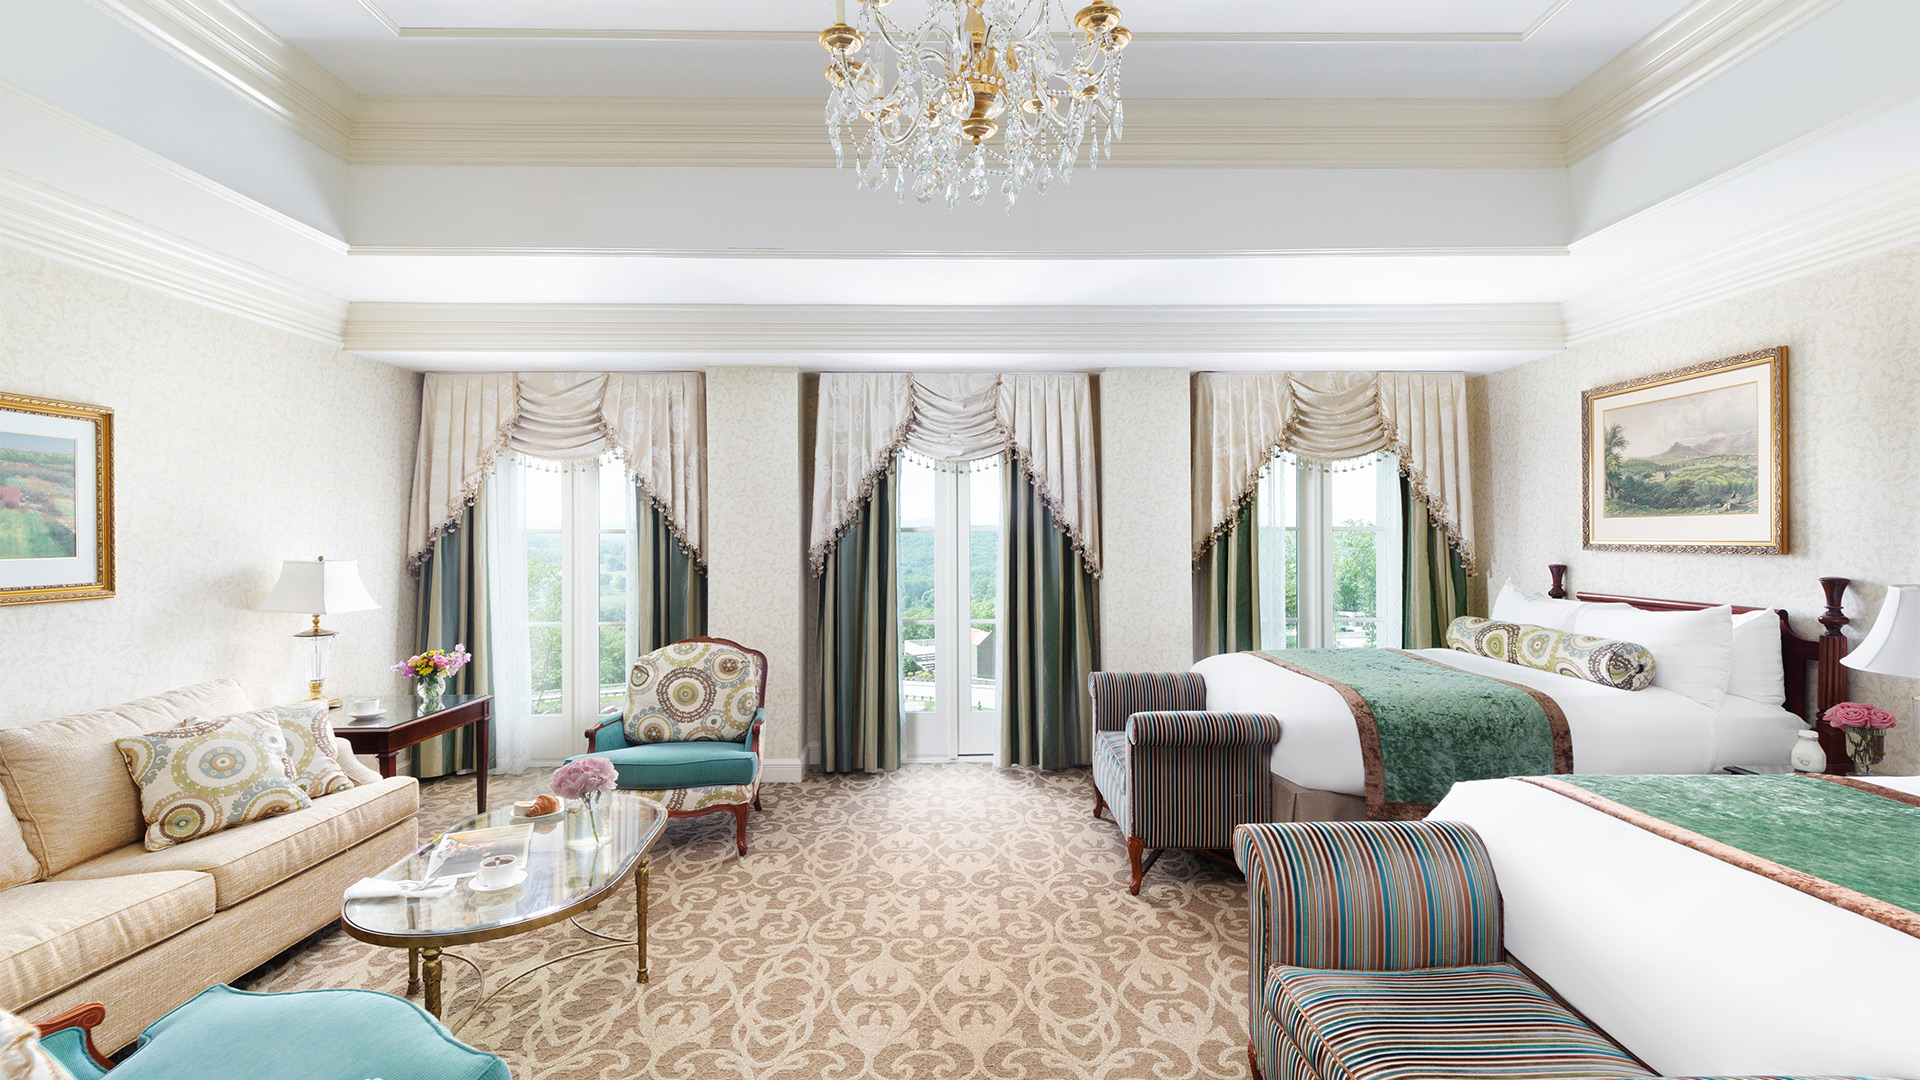 interior shot of The Chateau's junior double room. There are two queen beds with green and white linens and sitting benches at the foot of each. There are three windows overlooking the resort grounds and a sitting area